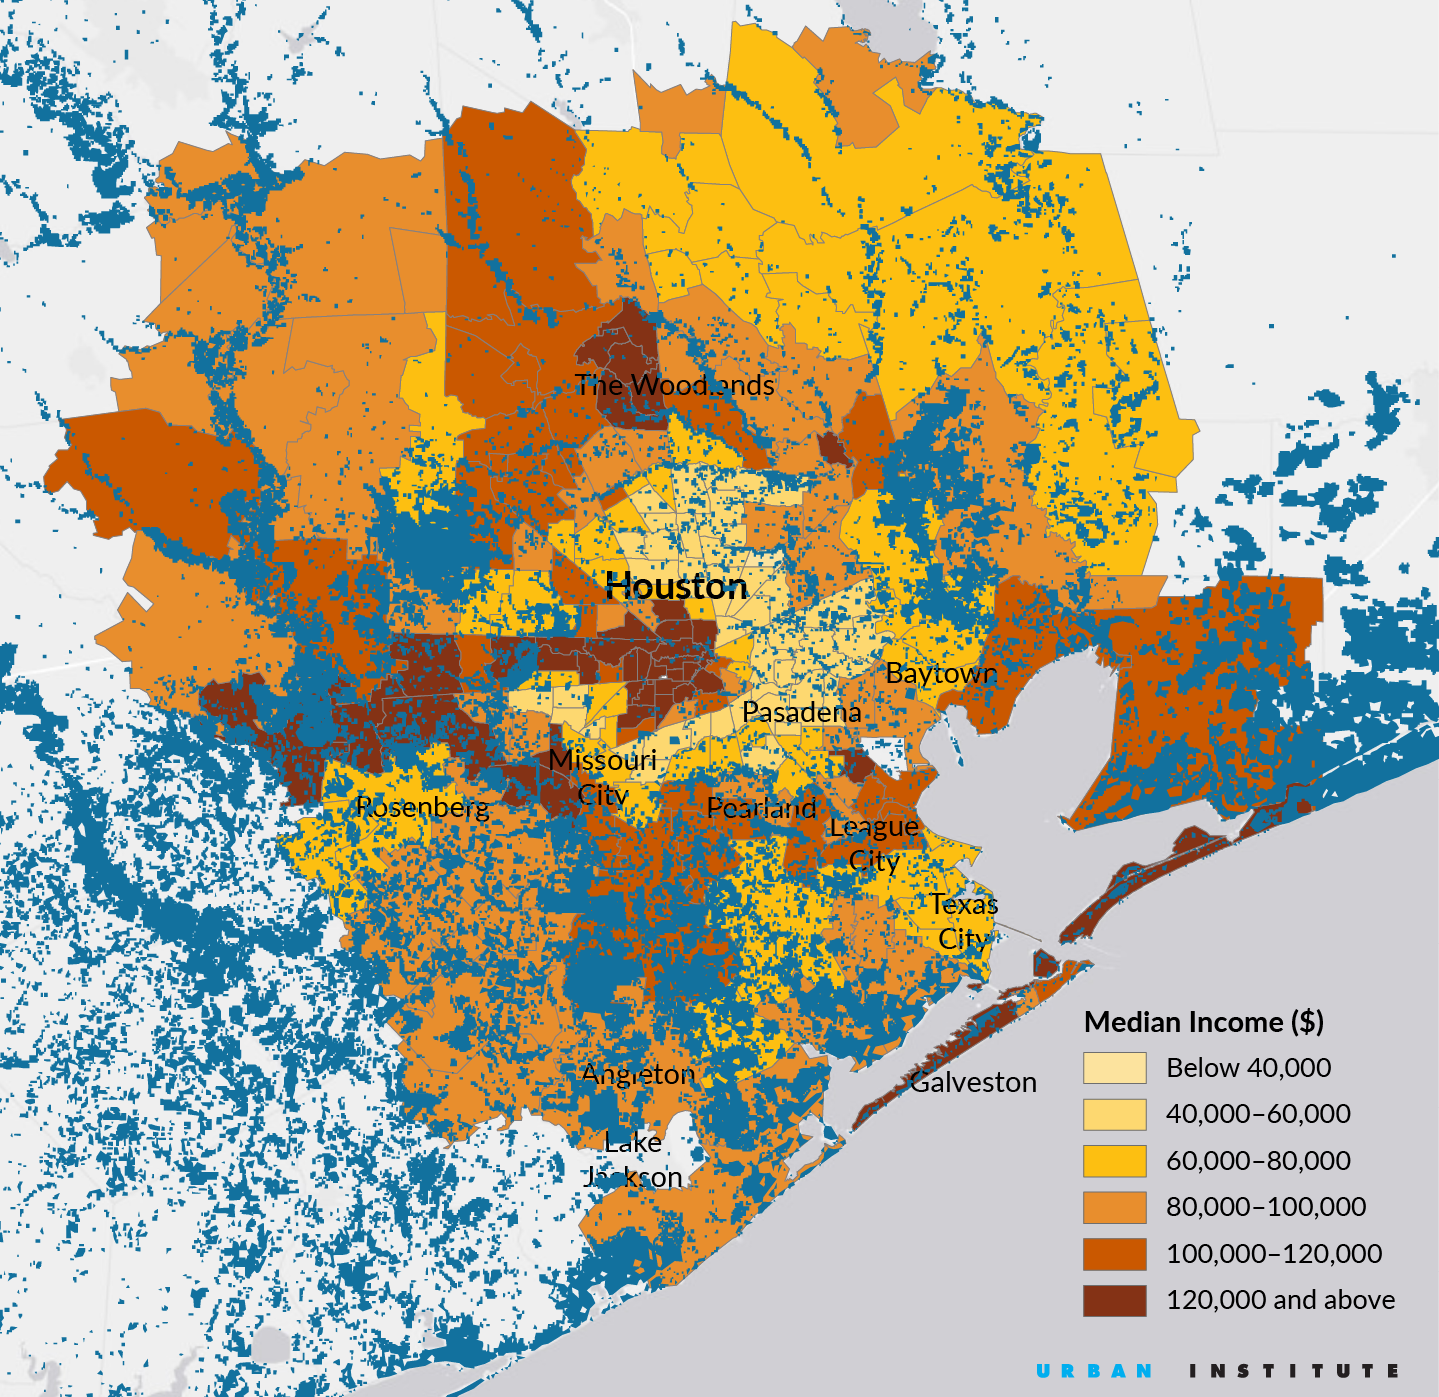 Visualizing Hurricane Harvey's impact on Houston's ... on demographics map of houston, class map of houston, address map of houston, crime map of houston, industry map of houston, geographic map of houston, race map of houston, zipcode map of houston,